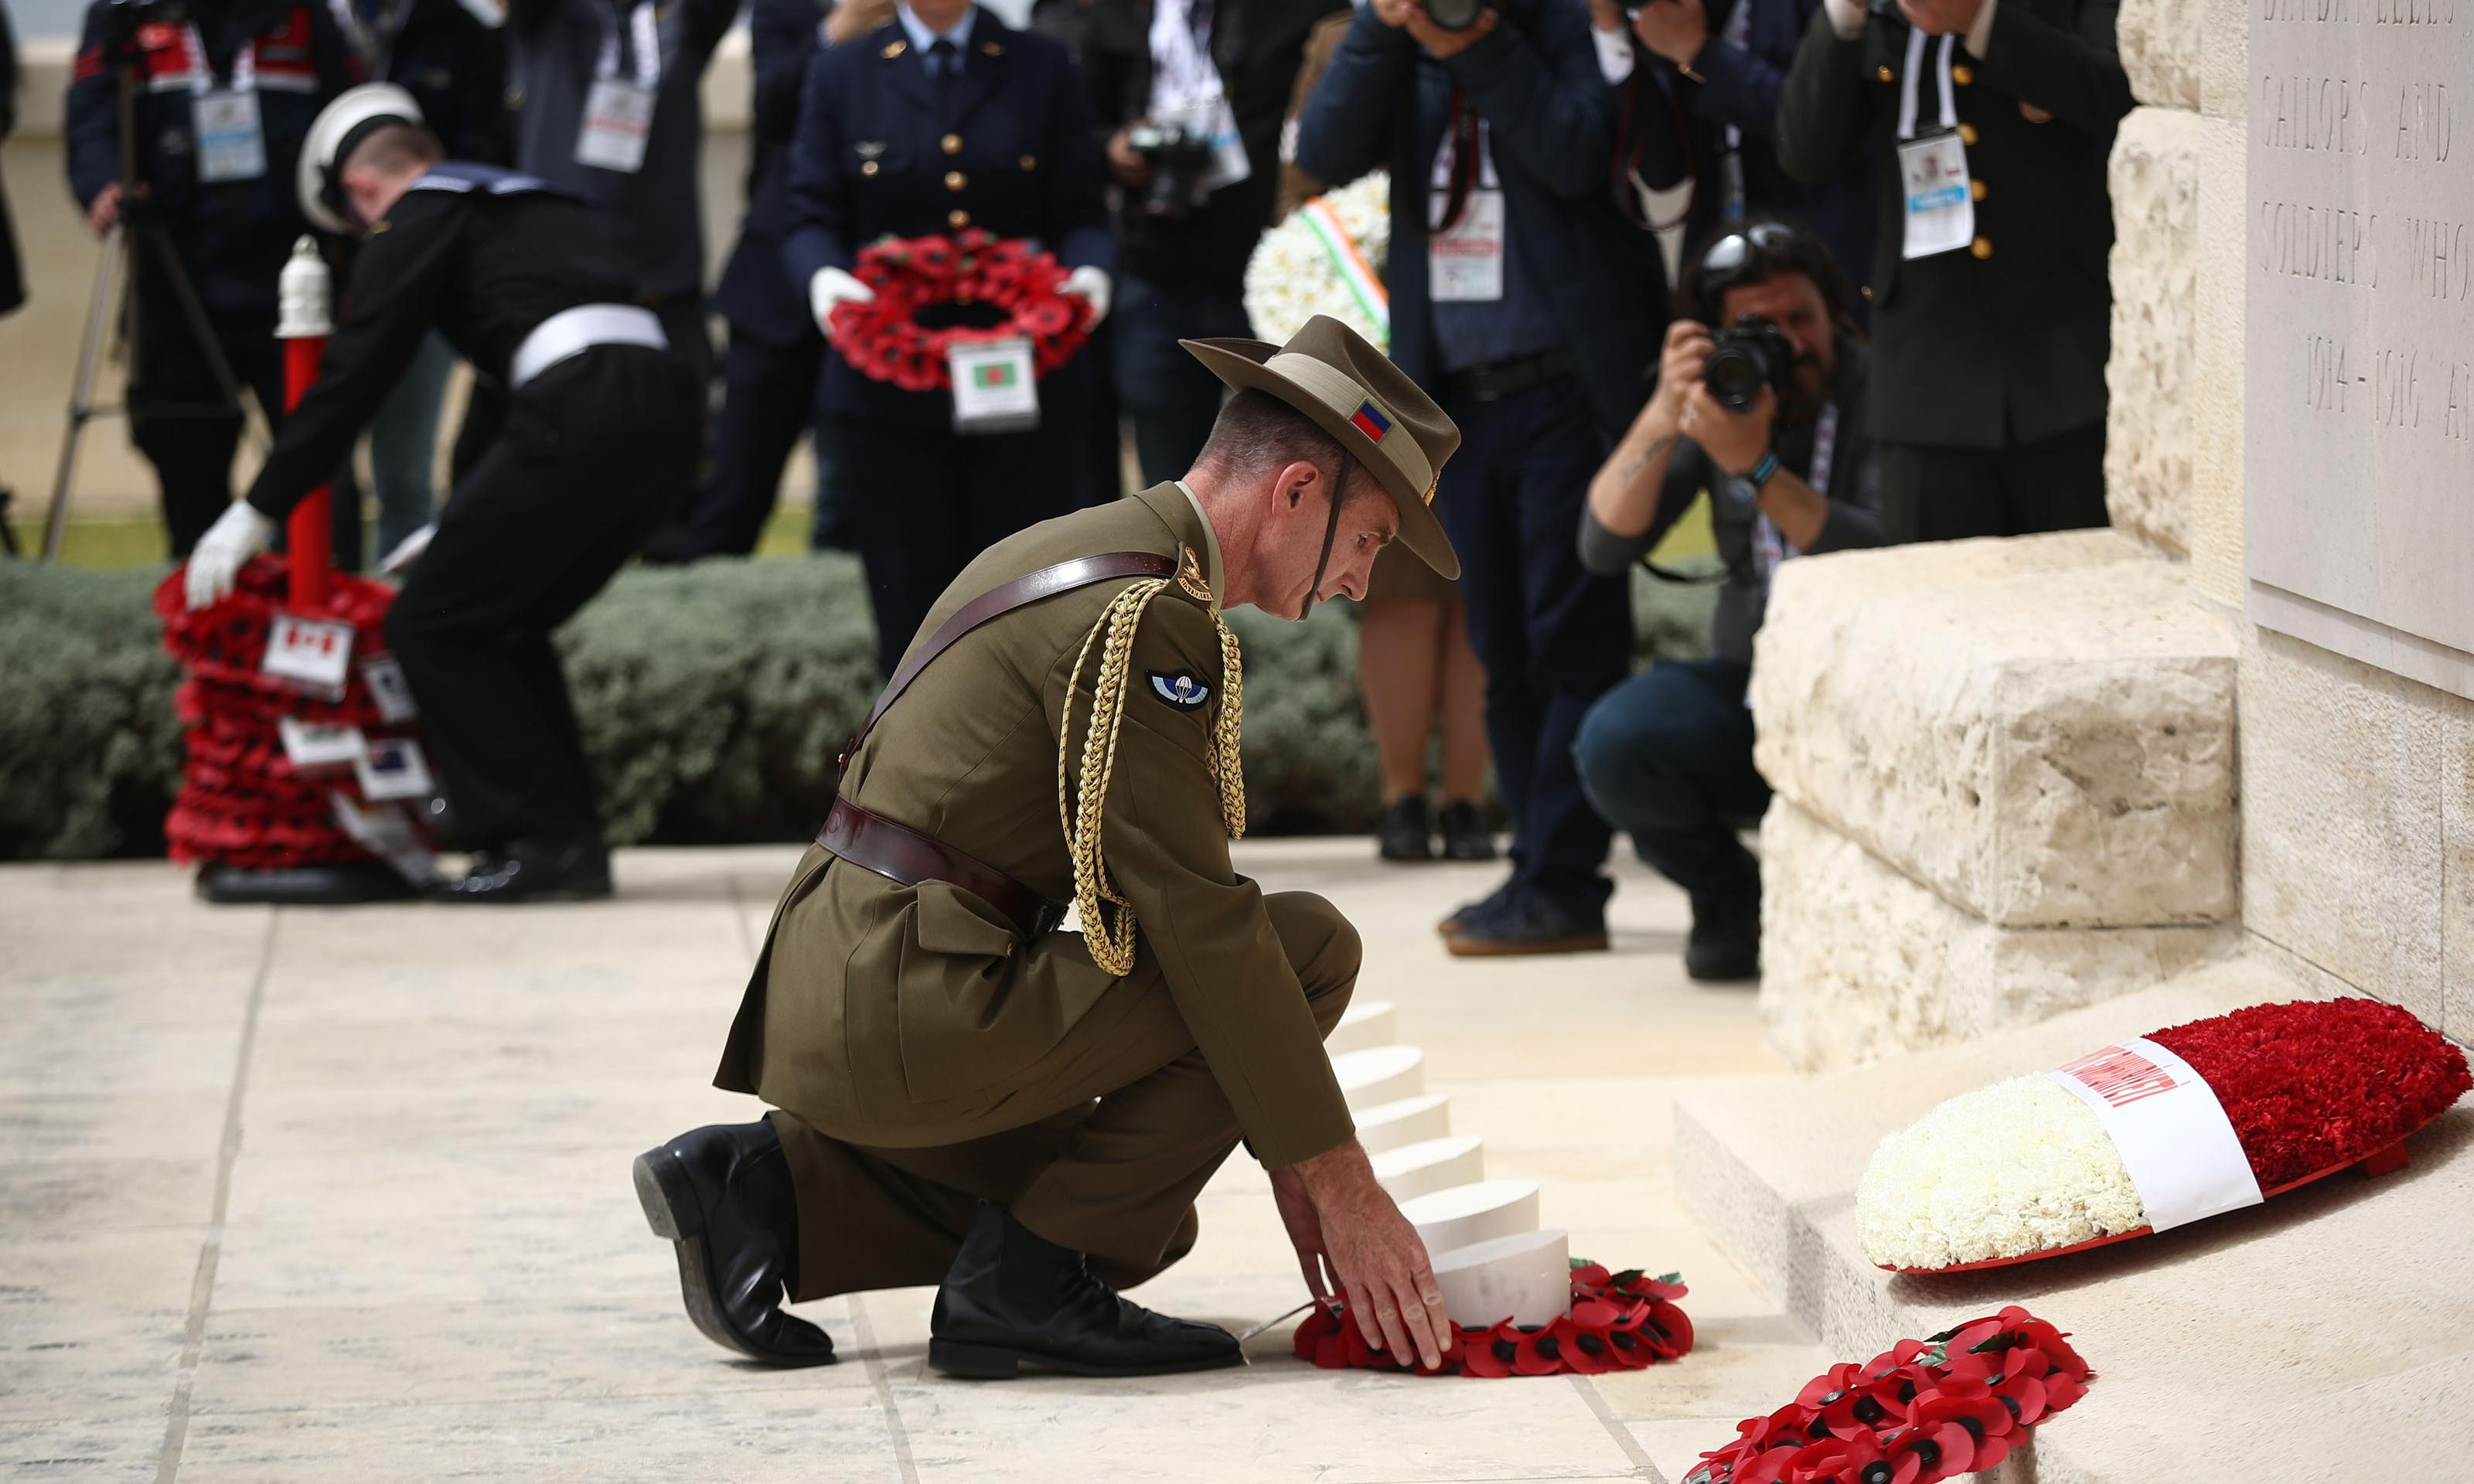 Scott Morrison says reports of Isis plot to target Anzac Day Gallipoli events 'inconclusive'